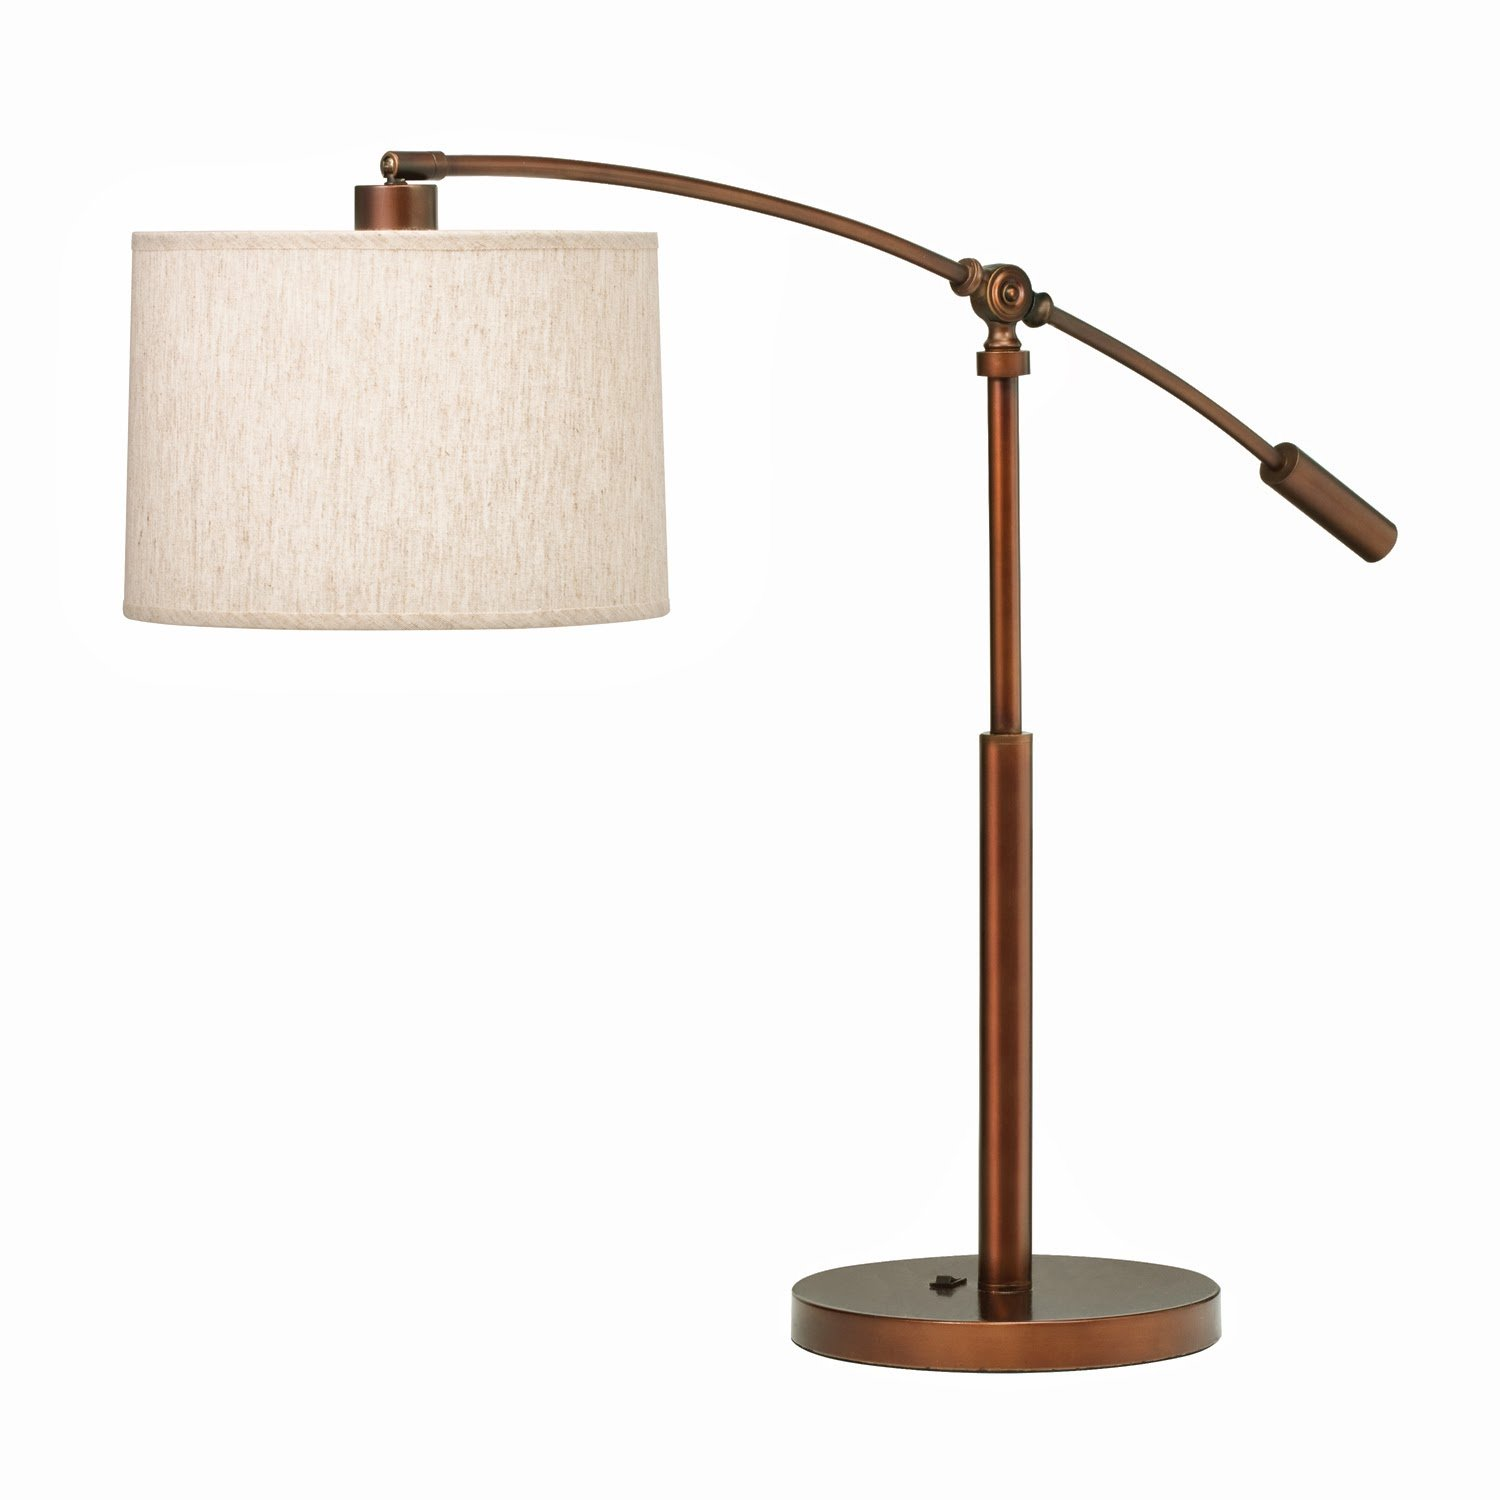 Bedside Lamps For Reading Best Bedside Reading Lamp Lighting For Students